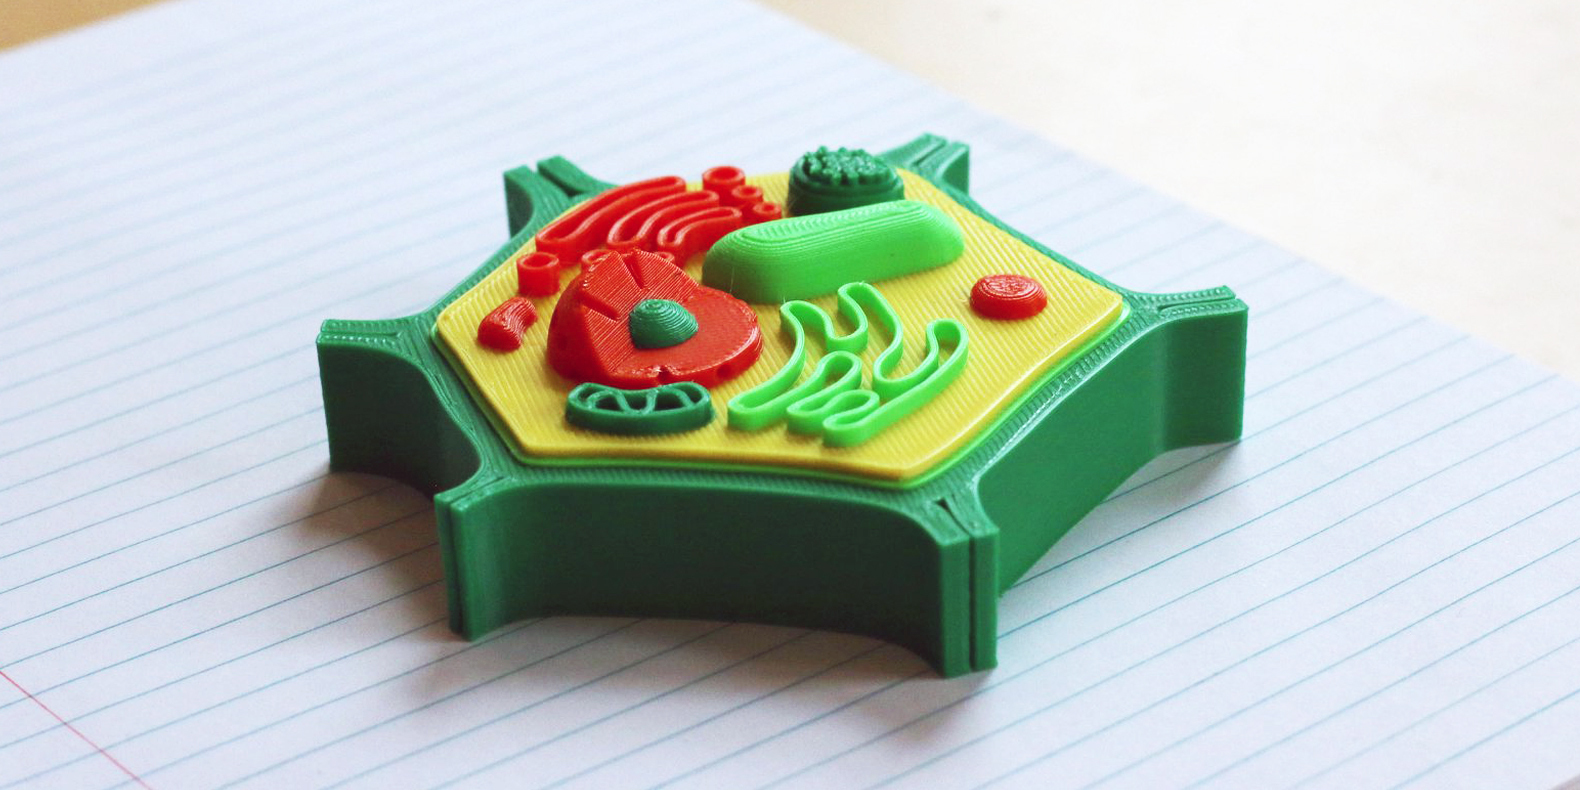 Find here a selection of the best biology related 3D models to make with a 3D printer